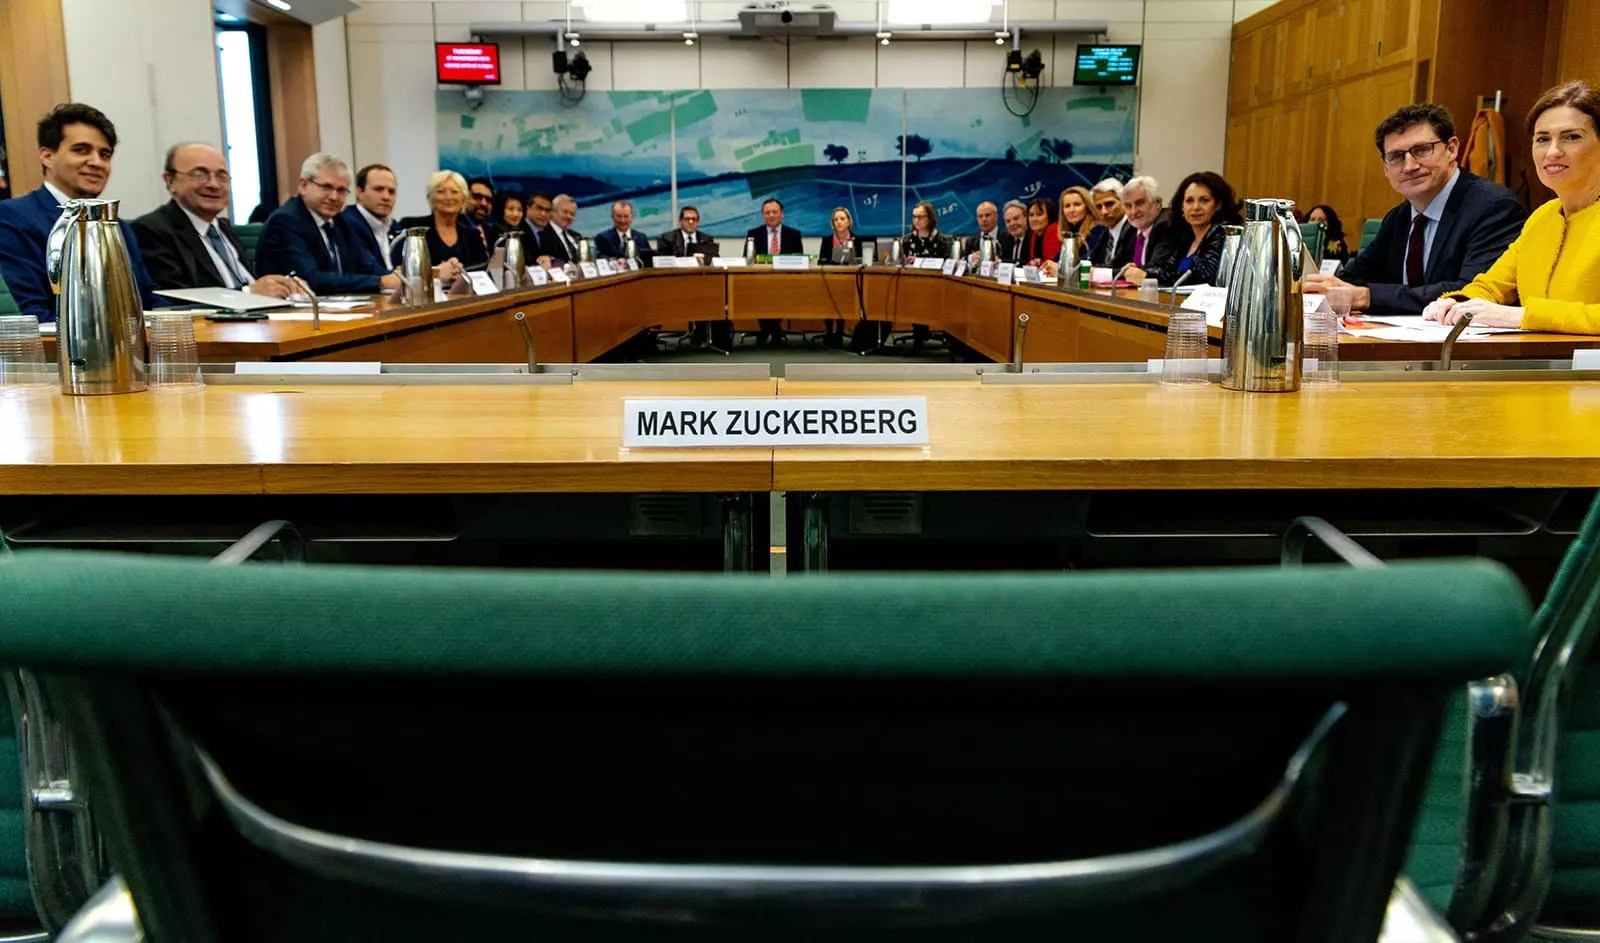 eNitiate   Politico Europe   Zuck's no-show at European Governments' Hearing on Facebook and Misinformation   27-11-2018